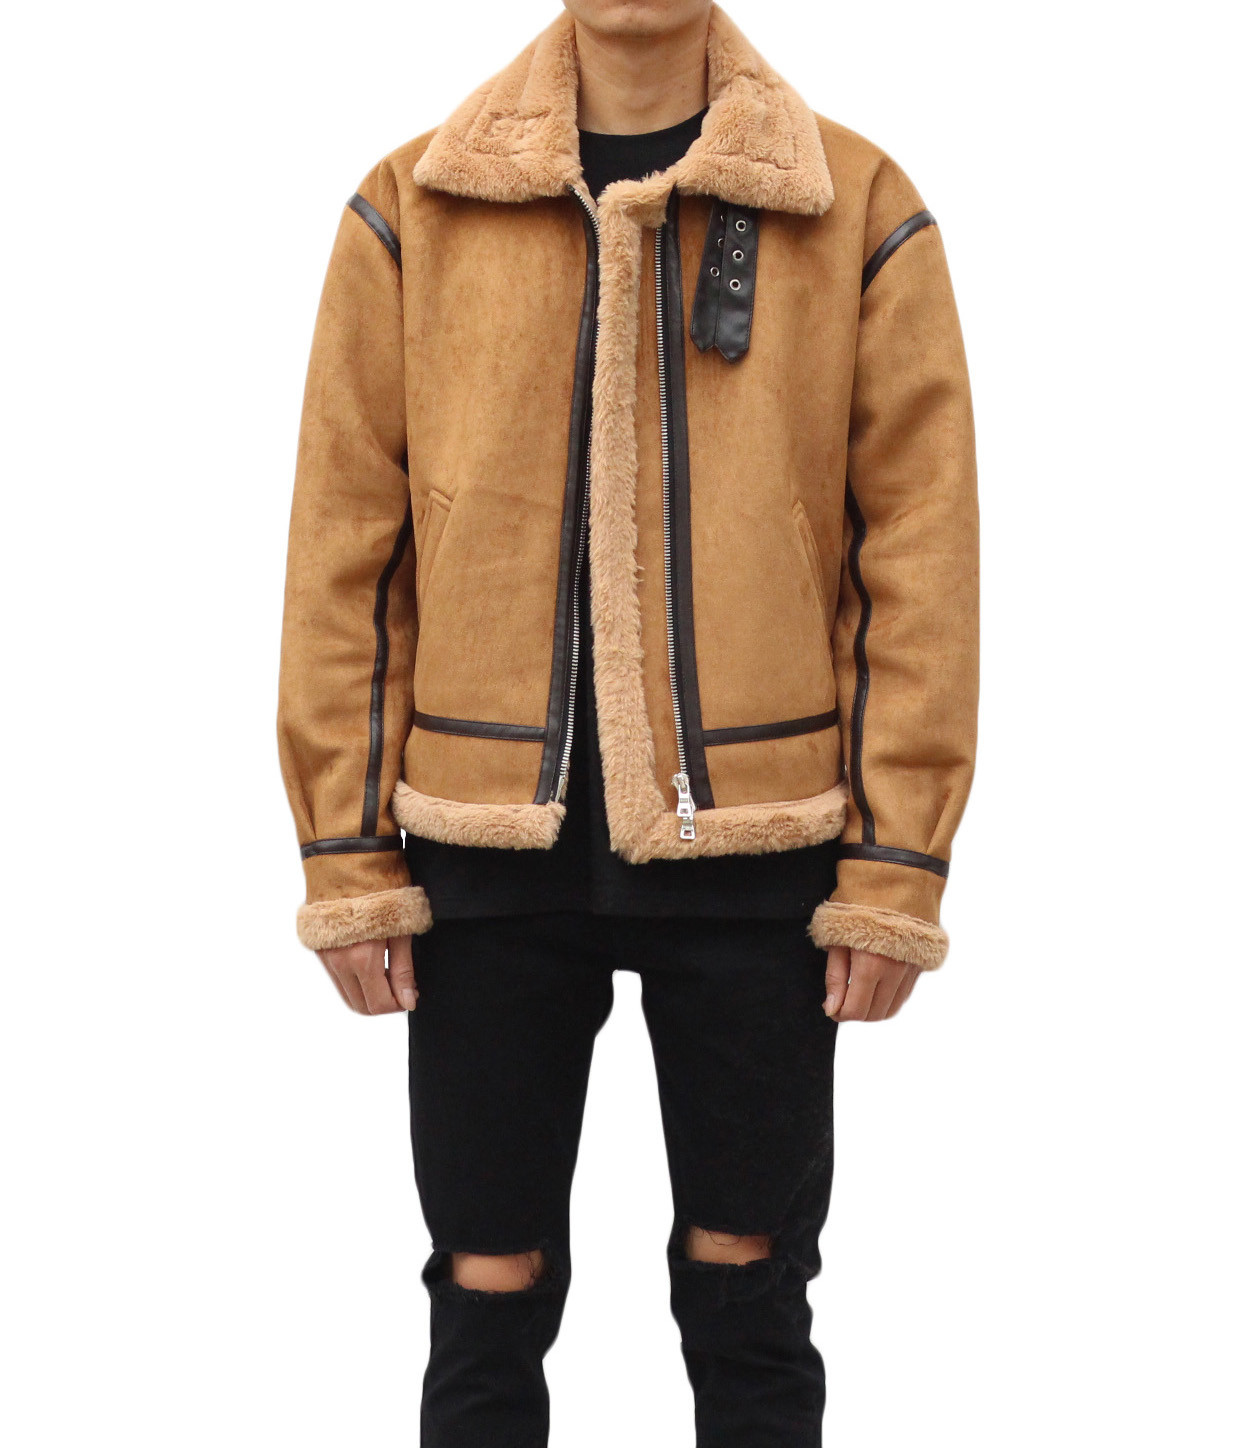 Shearling Jacket - Tan